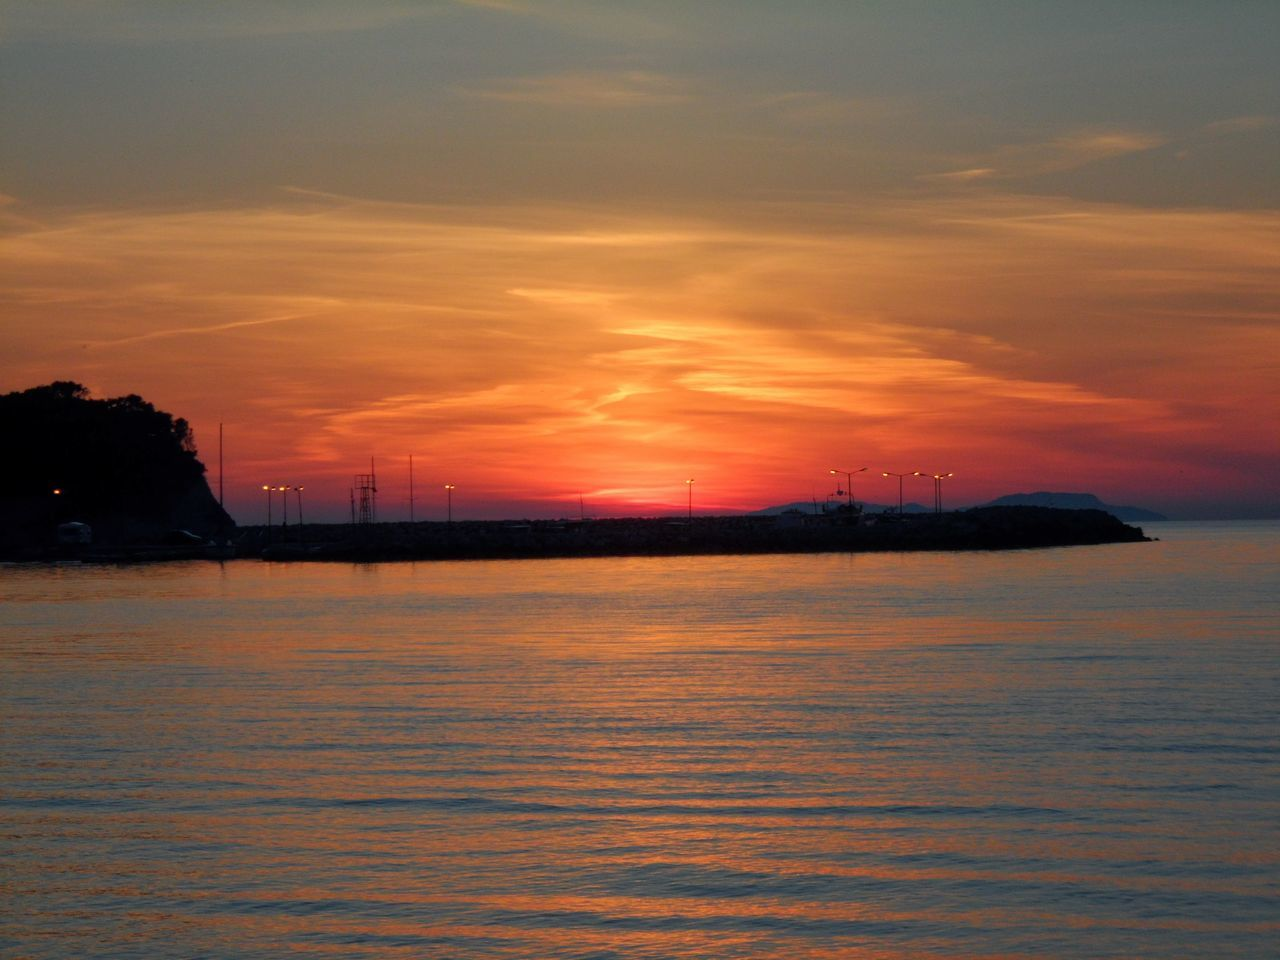 sunset, sky, waterfront, sea, water, nature, silhouette, no people, beauty in nature, tranquility, scenics, outdoors, tranquil scene, cloud - sky, built structure, architecture, day